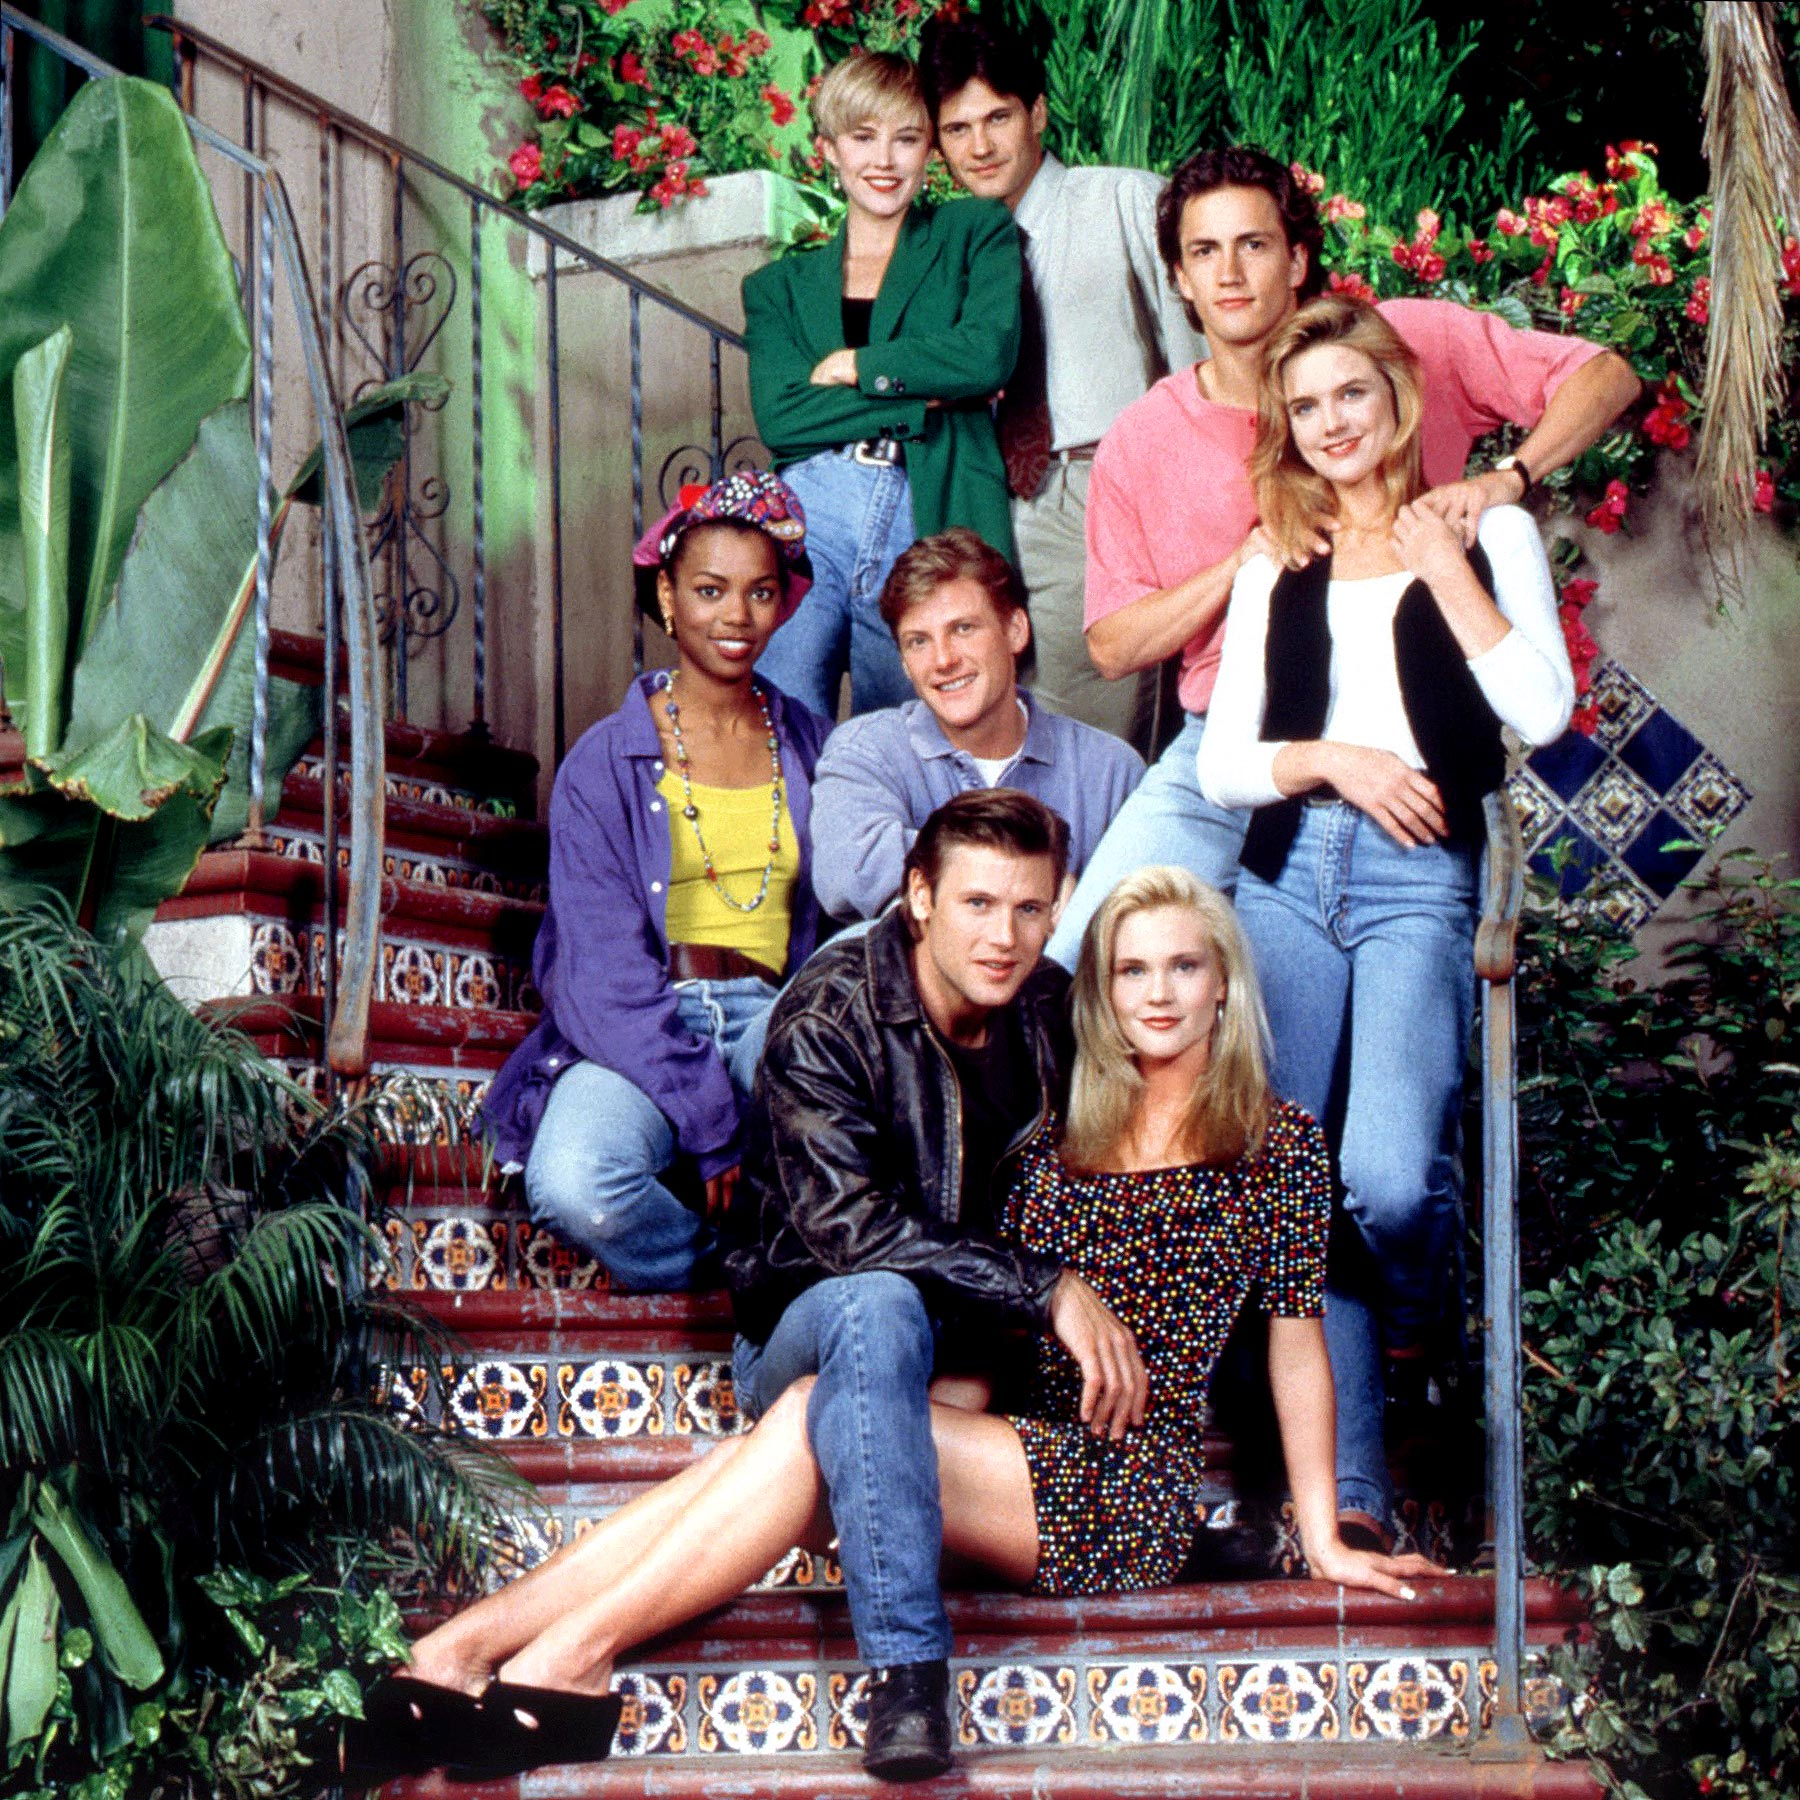 MELROSE PLACE, (clockwise from top): Josie Bissett, Thomas Calabro, Andrew Shue, Courtney Thorne-Smi